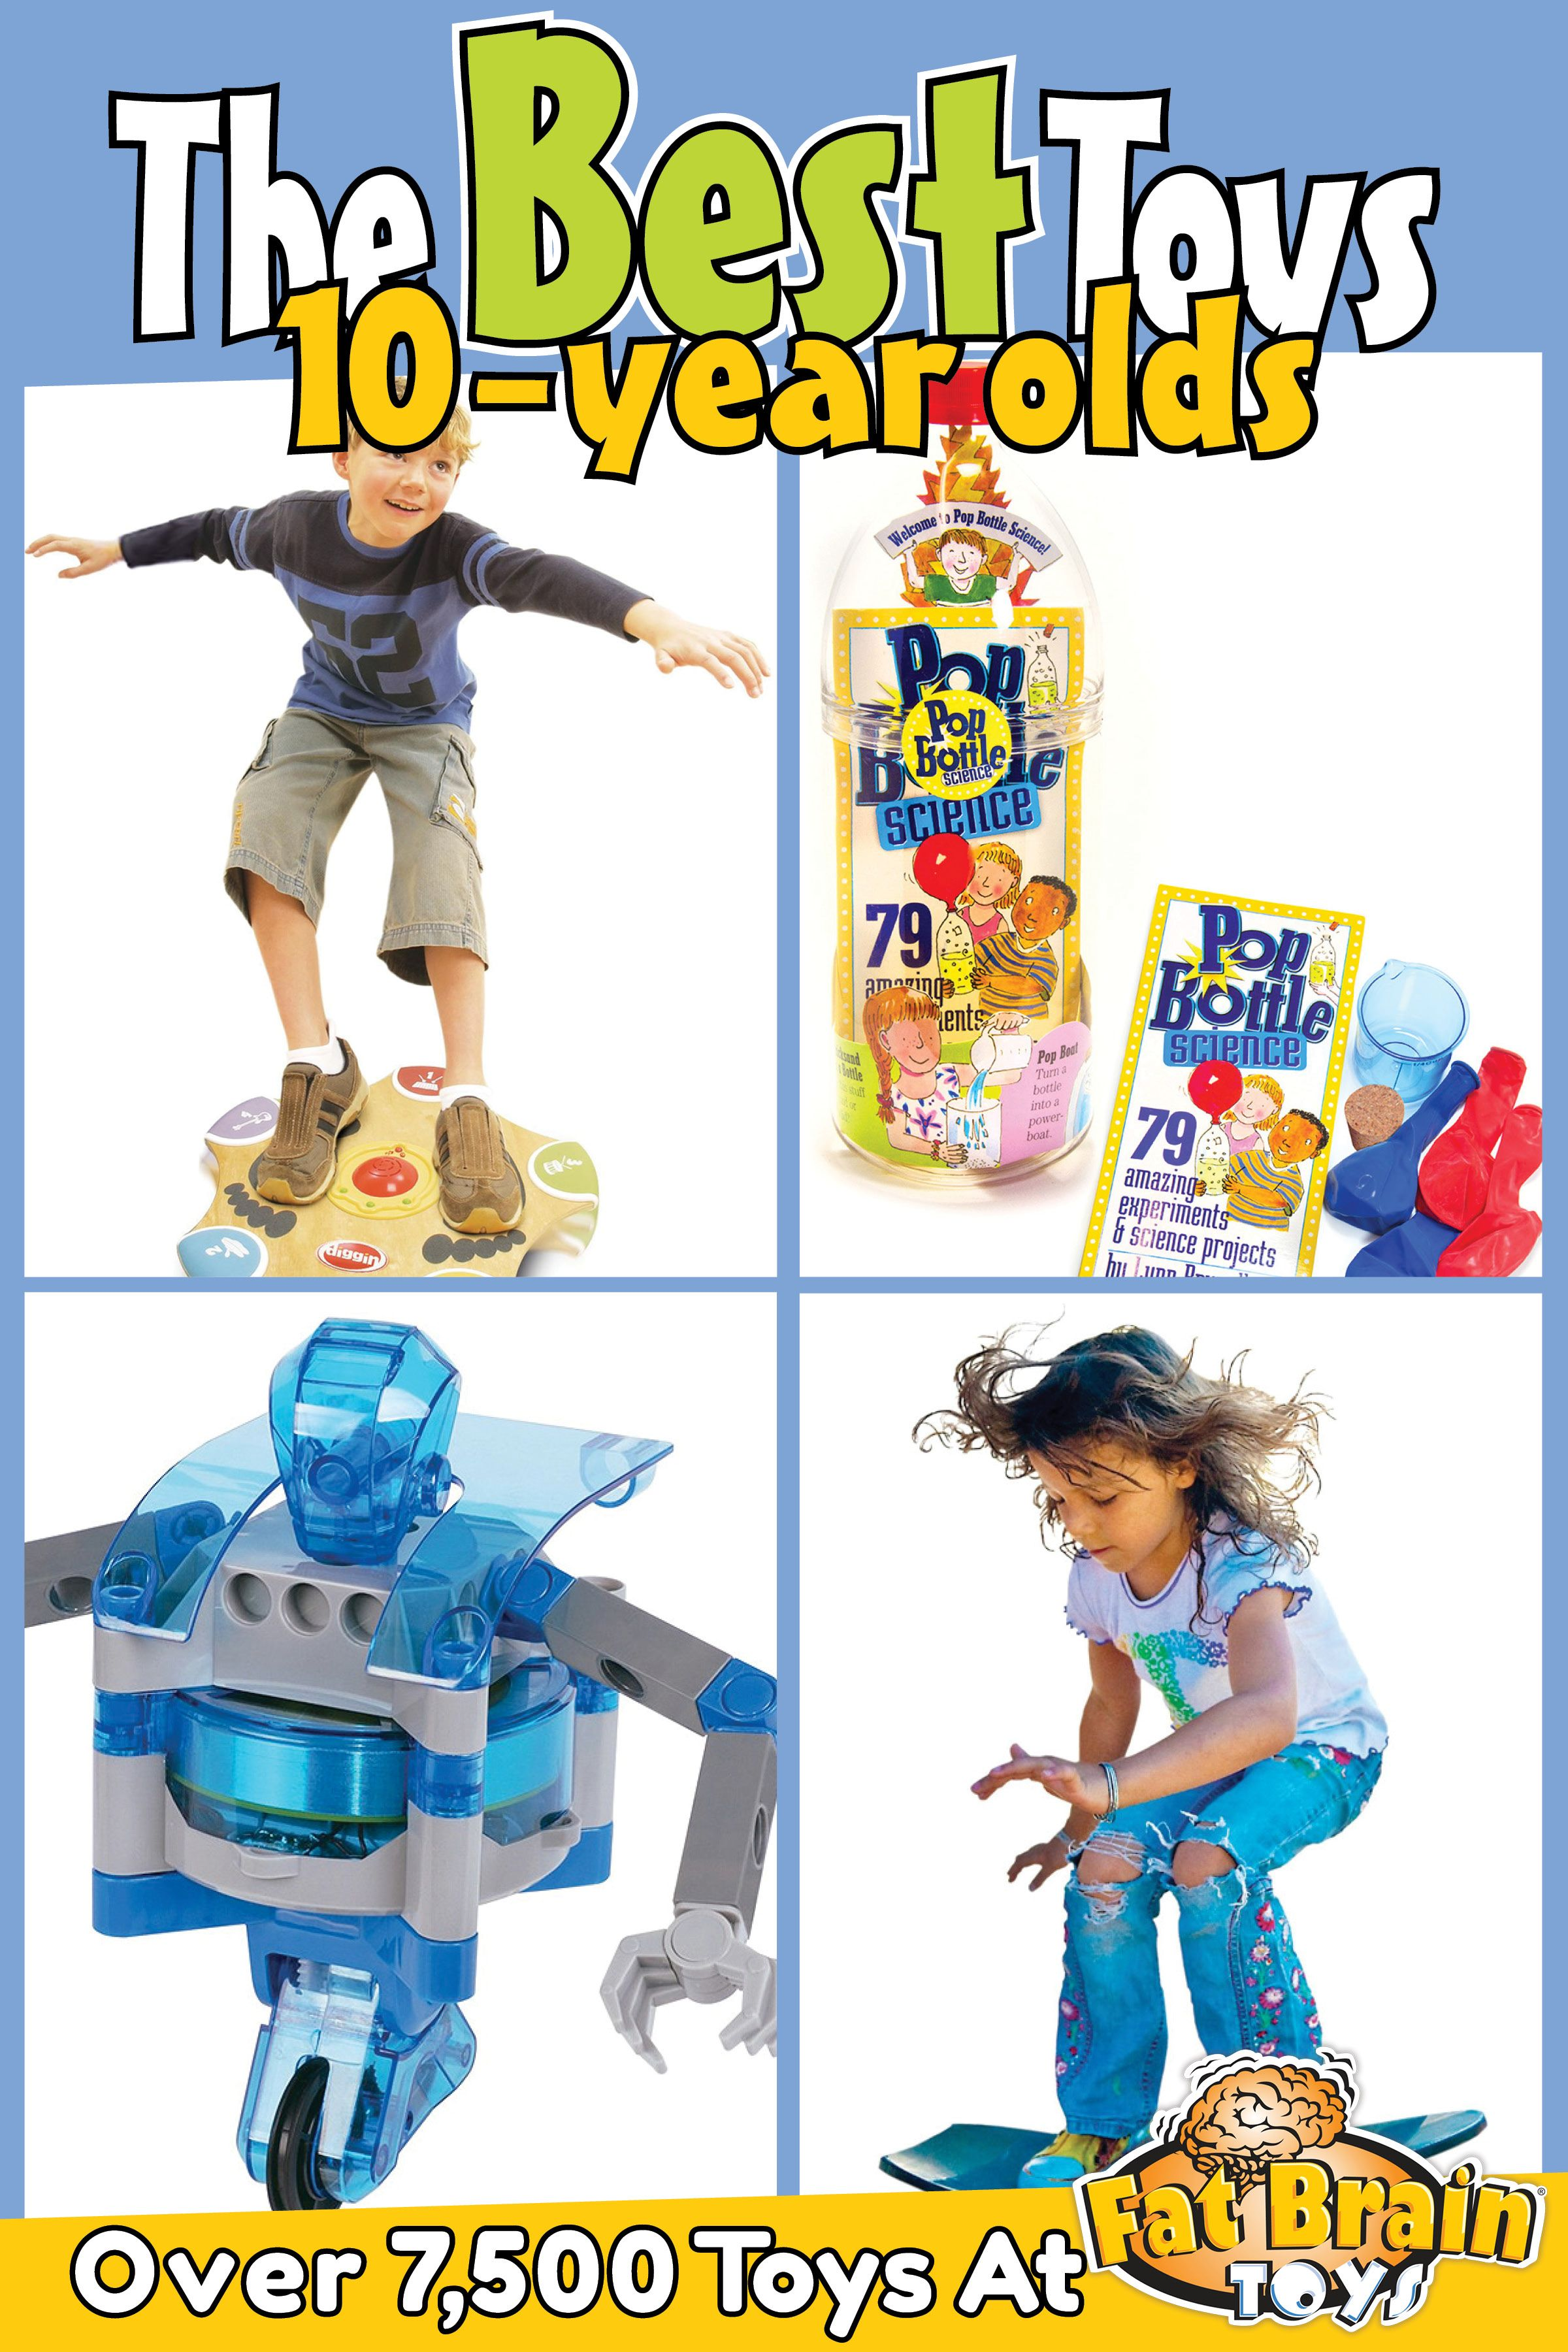 Permalink to The Best Of Brain toys for Kids Images